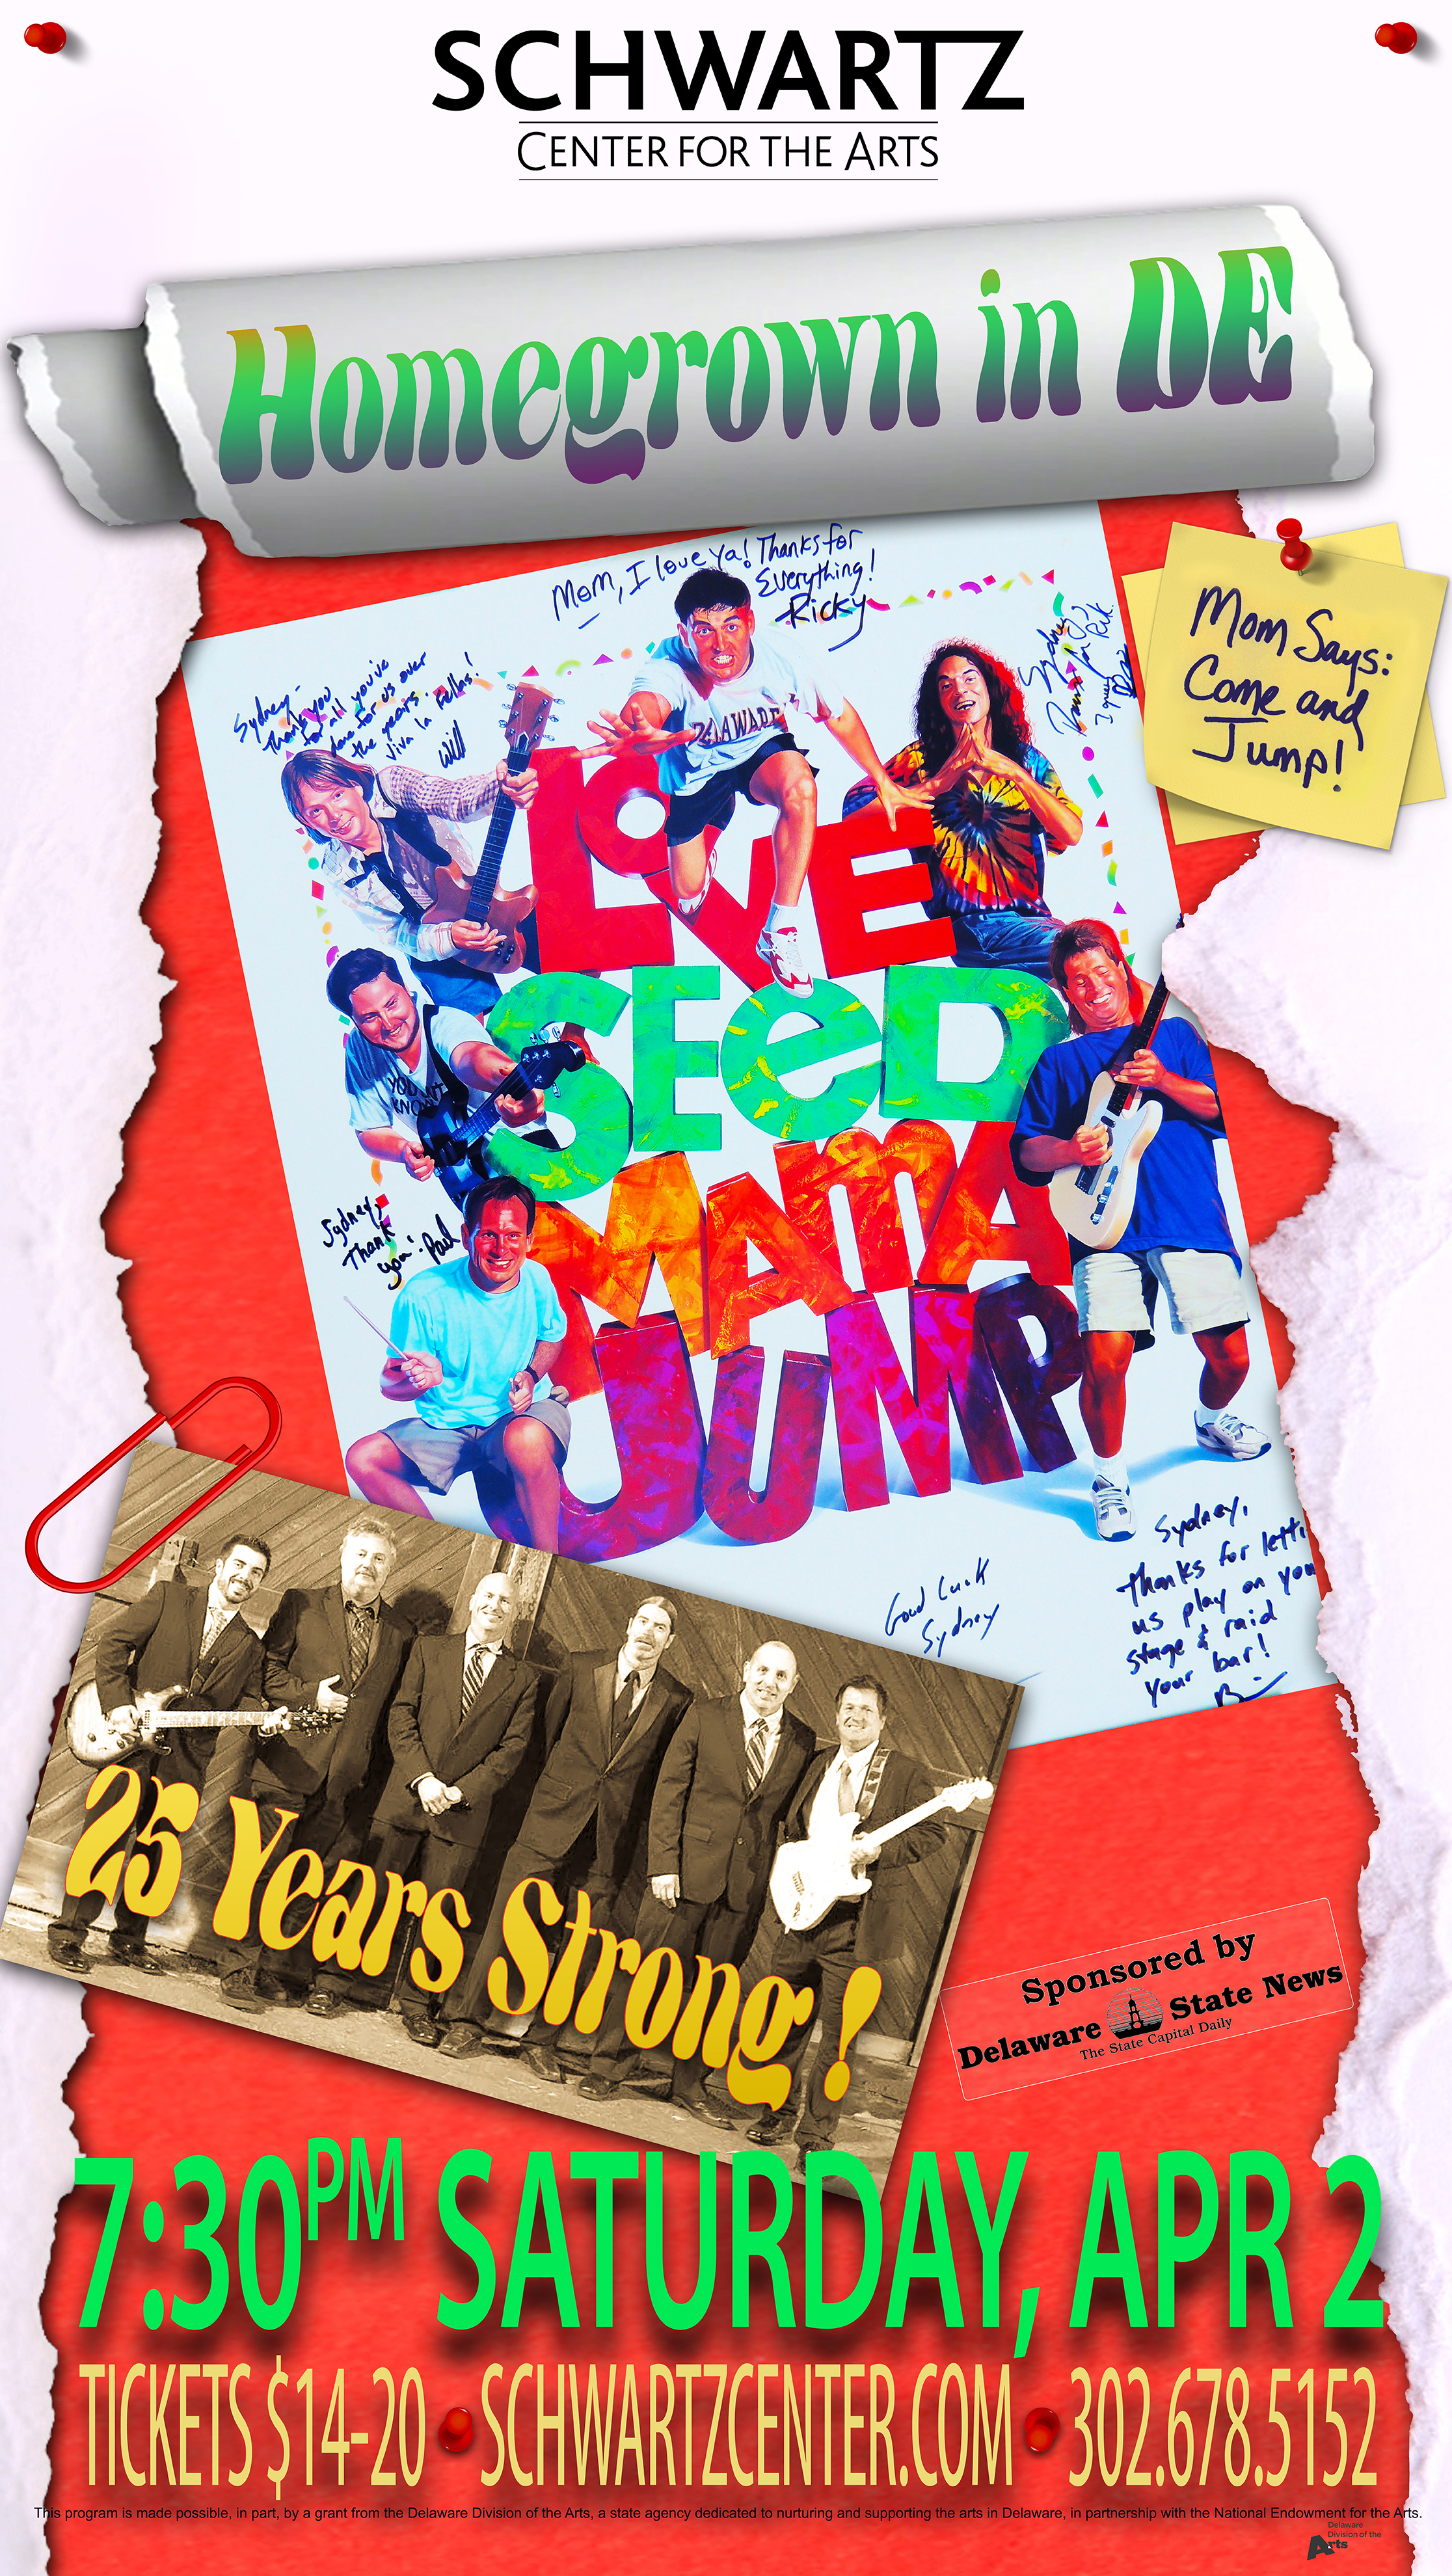 Concert Poster - Love Seed Mama Jump